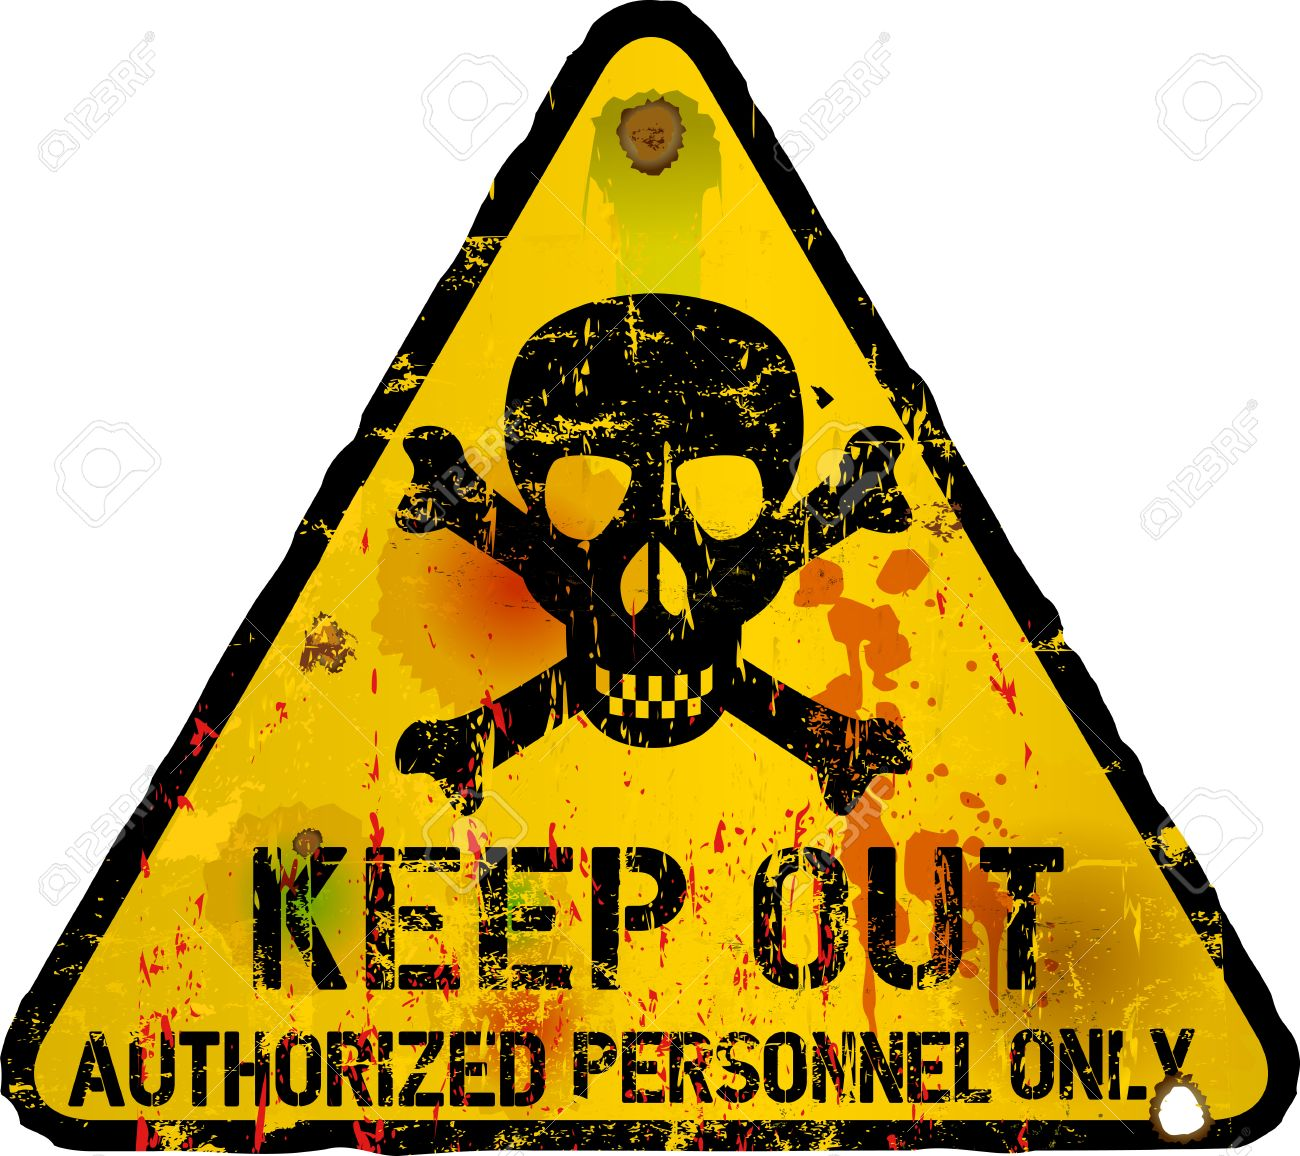 Keep Out Sign, Warning Prohibition Sign Royalty Free Cliparts.